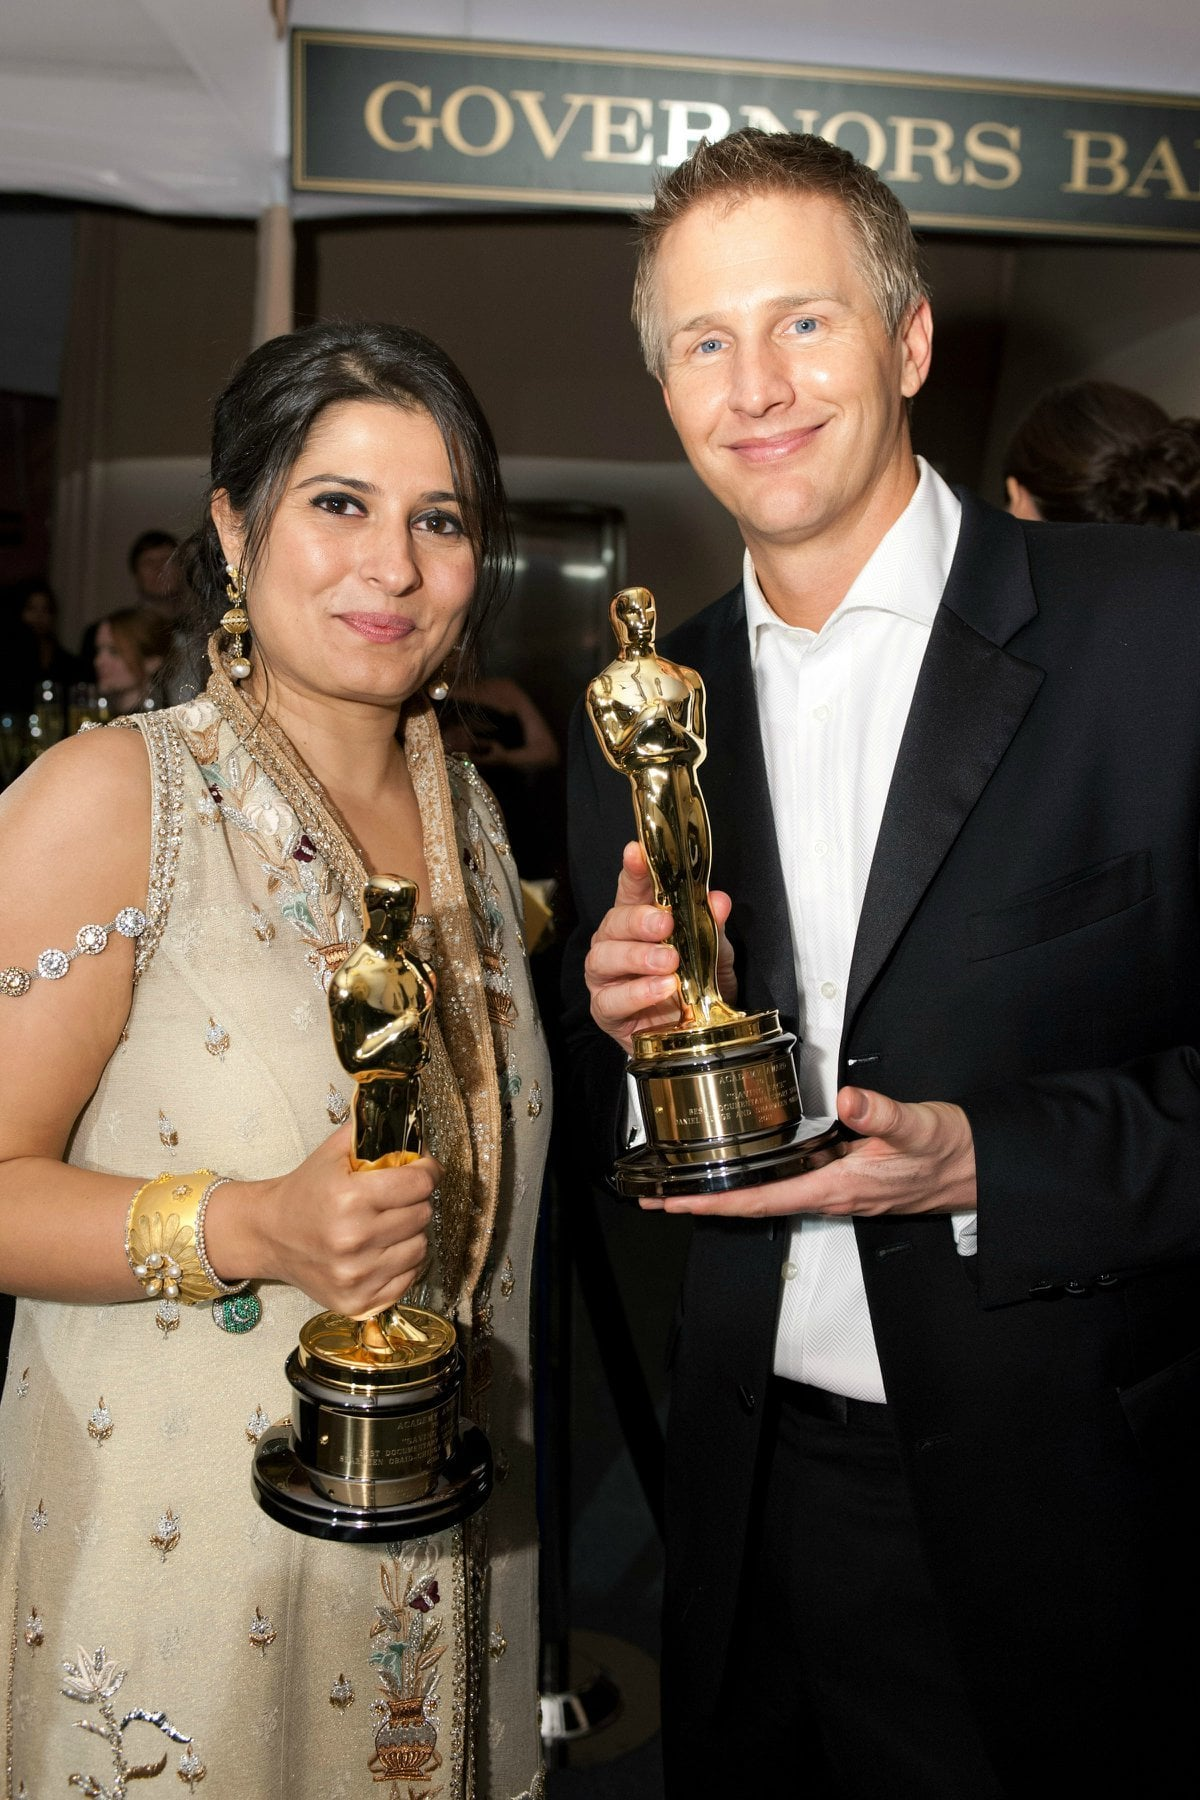 Sharmeen Obaid-Chinoy at the Oscars 2012